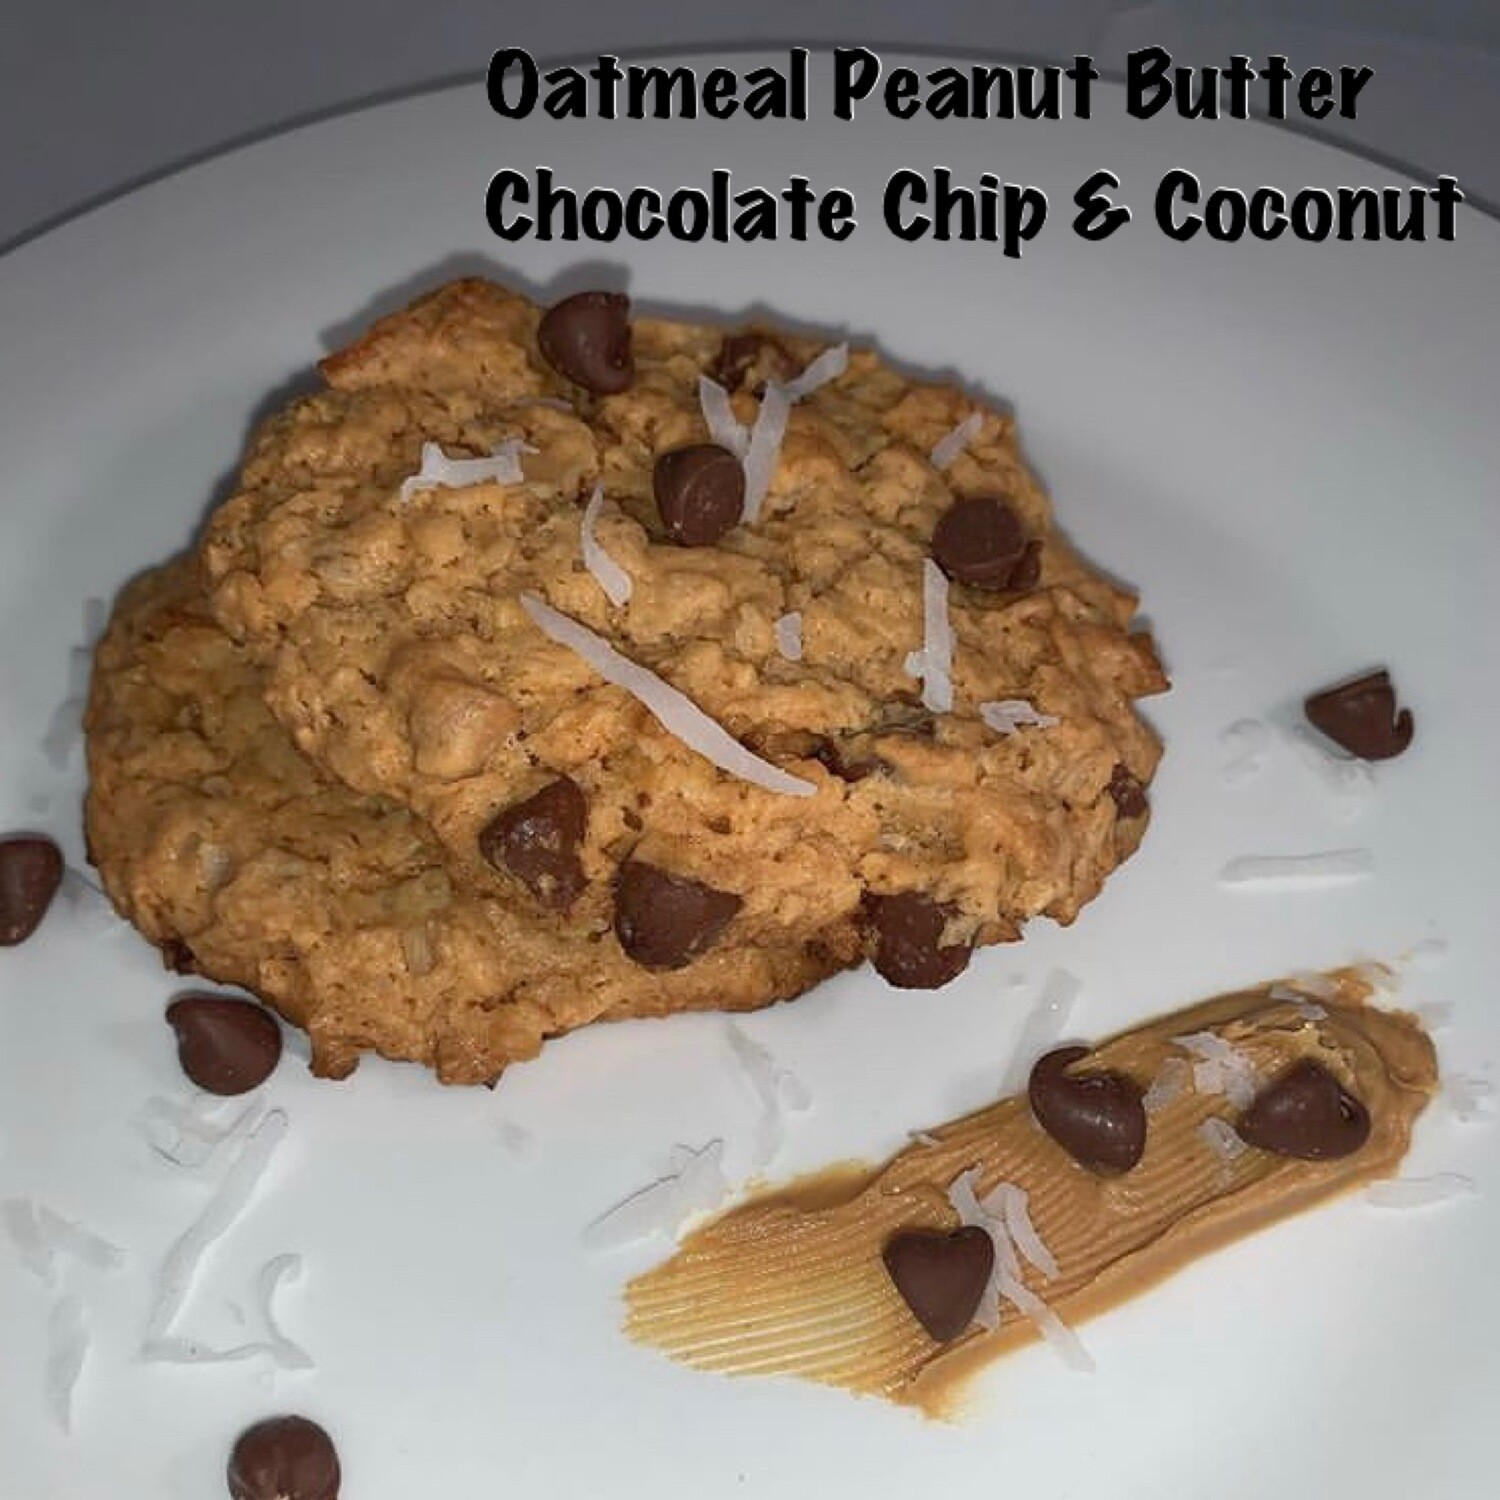 Oatmeal Peanut Butter, Chocolate Chip, & Coconut